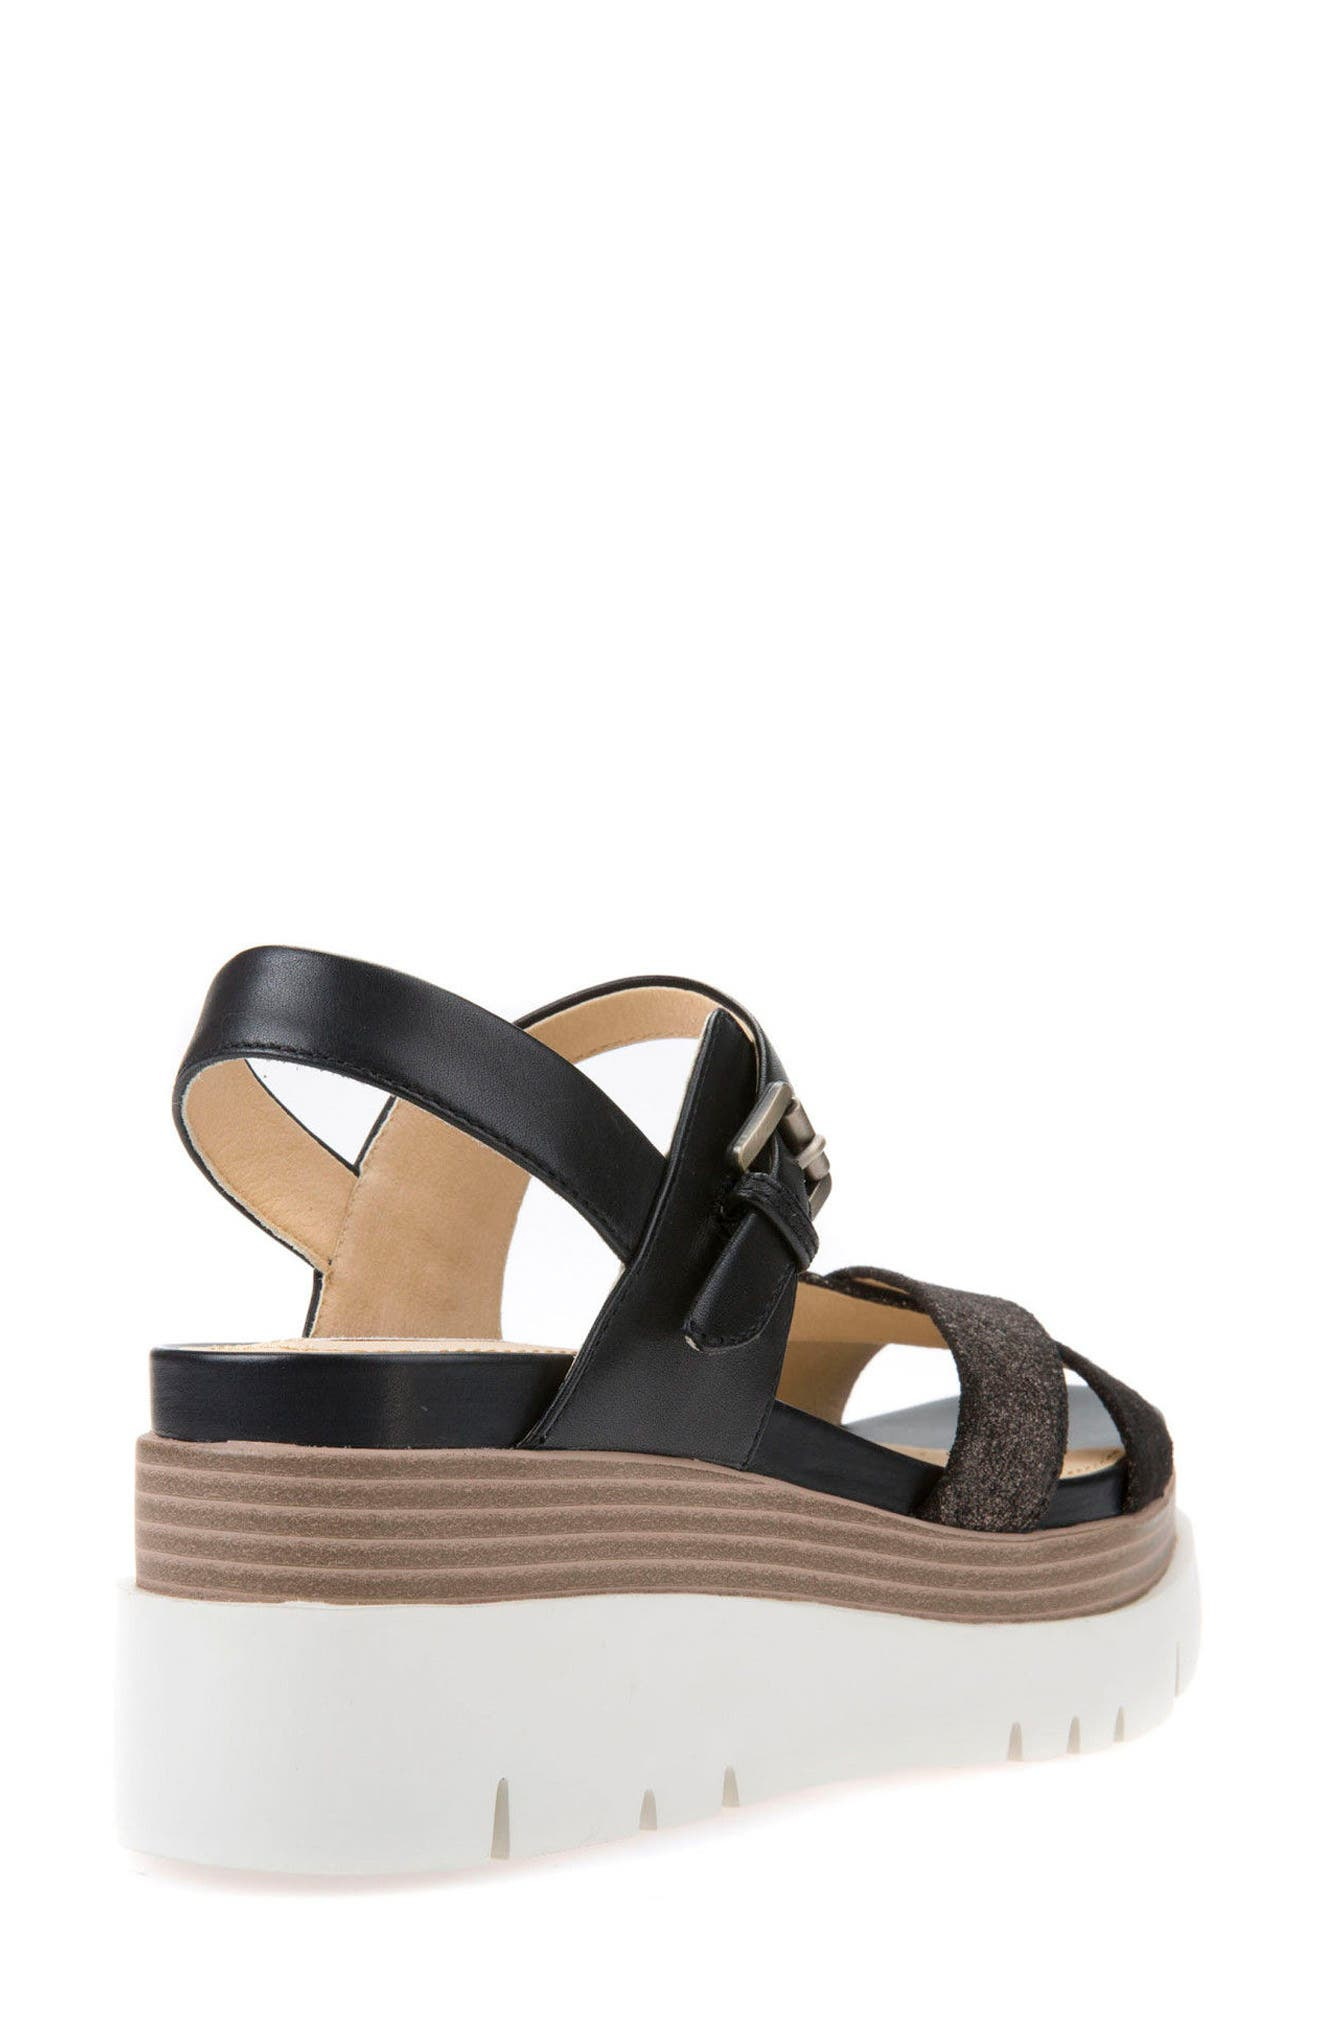 Radwa Platform Sandal,                             Alternate thumbnail 2, color,                             001